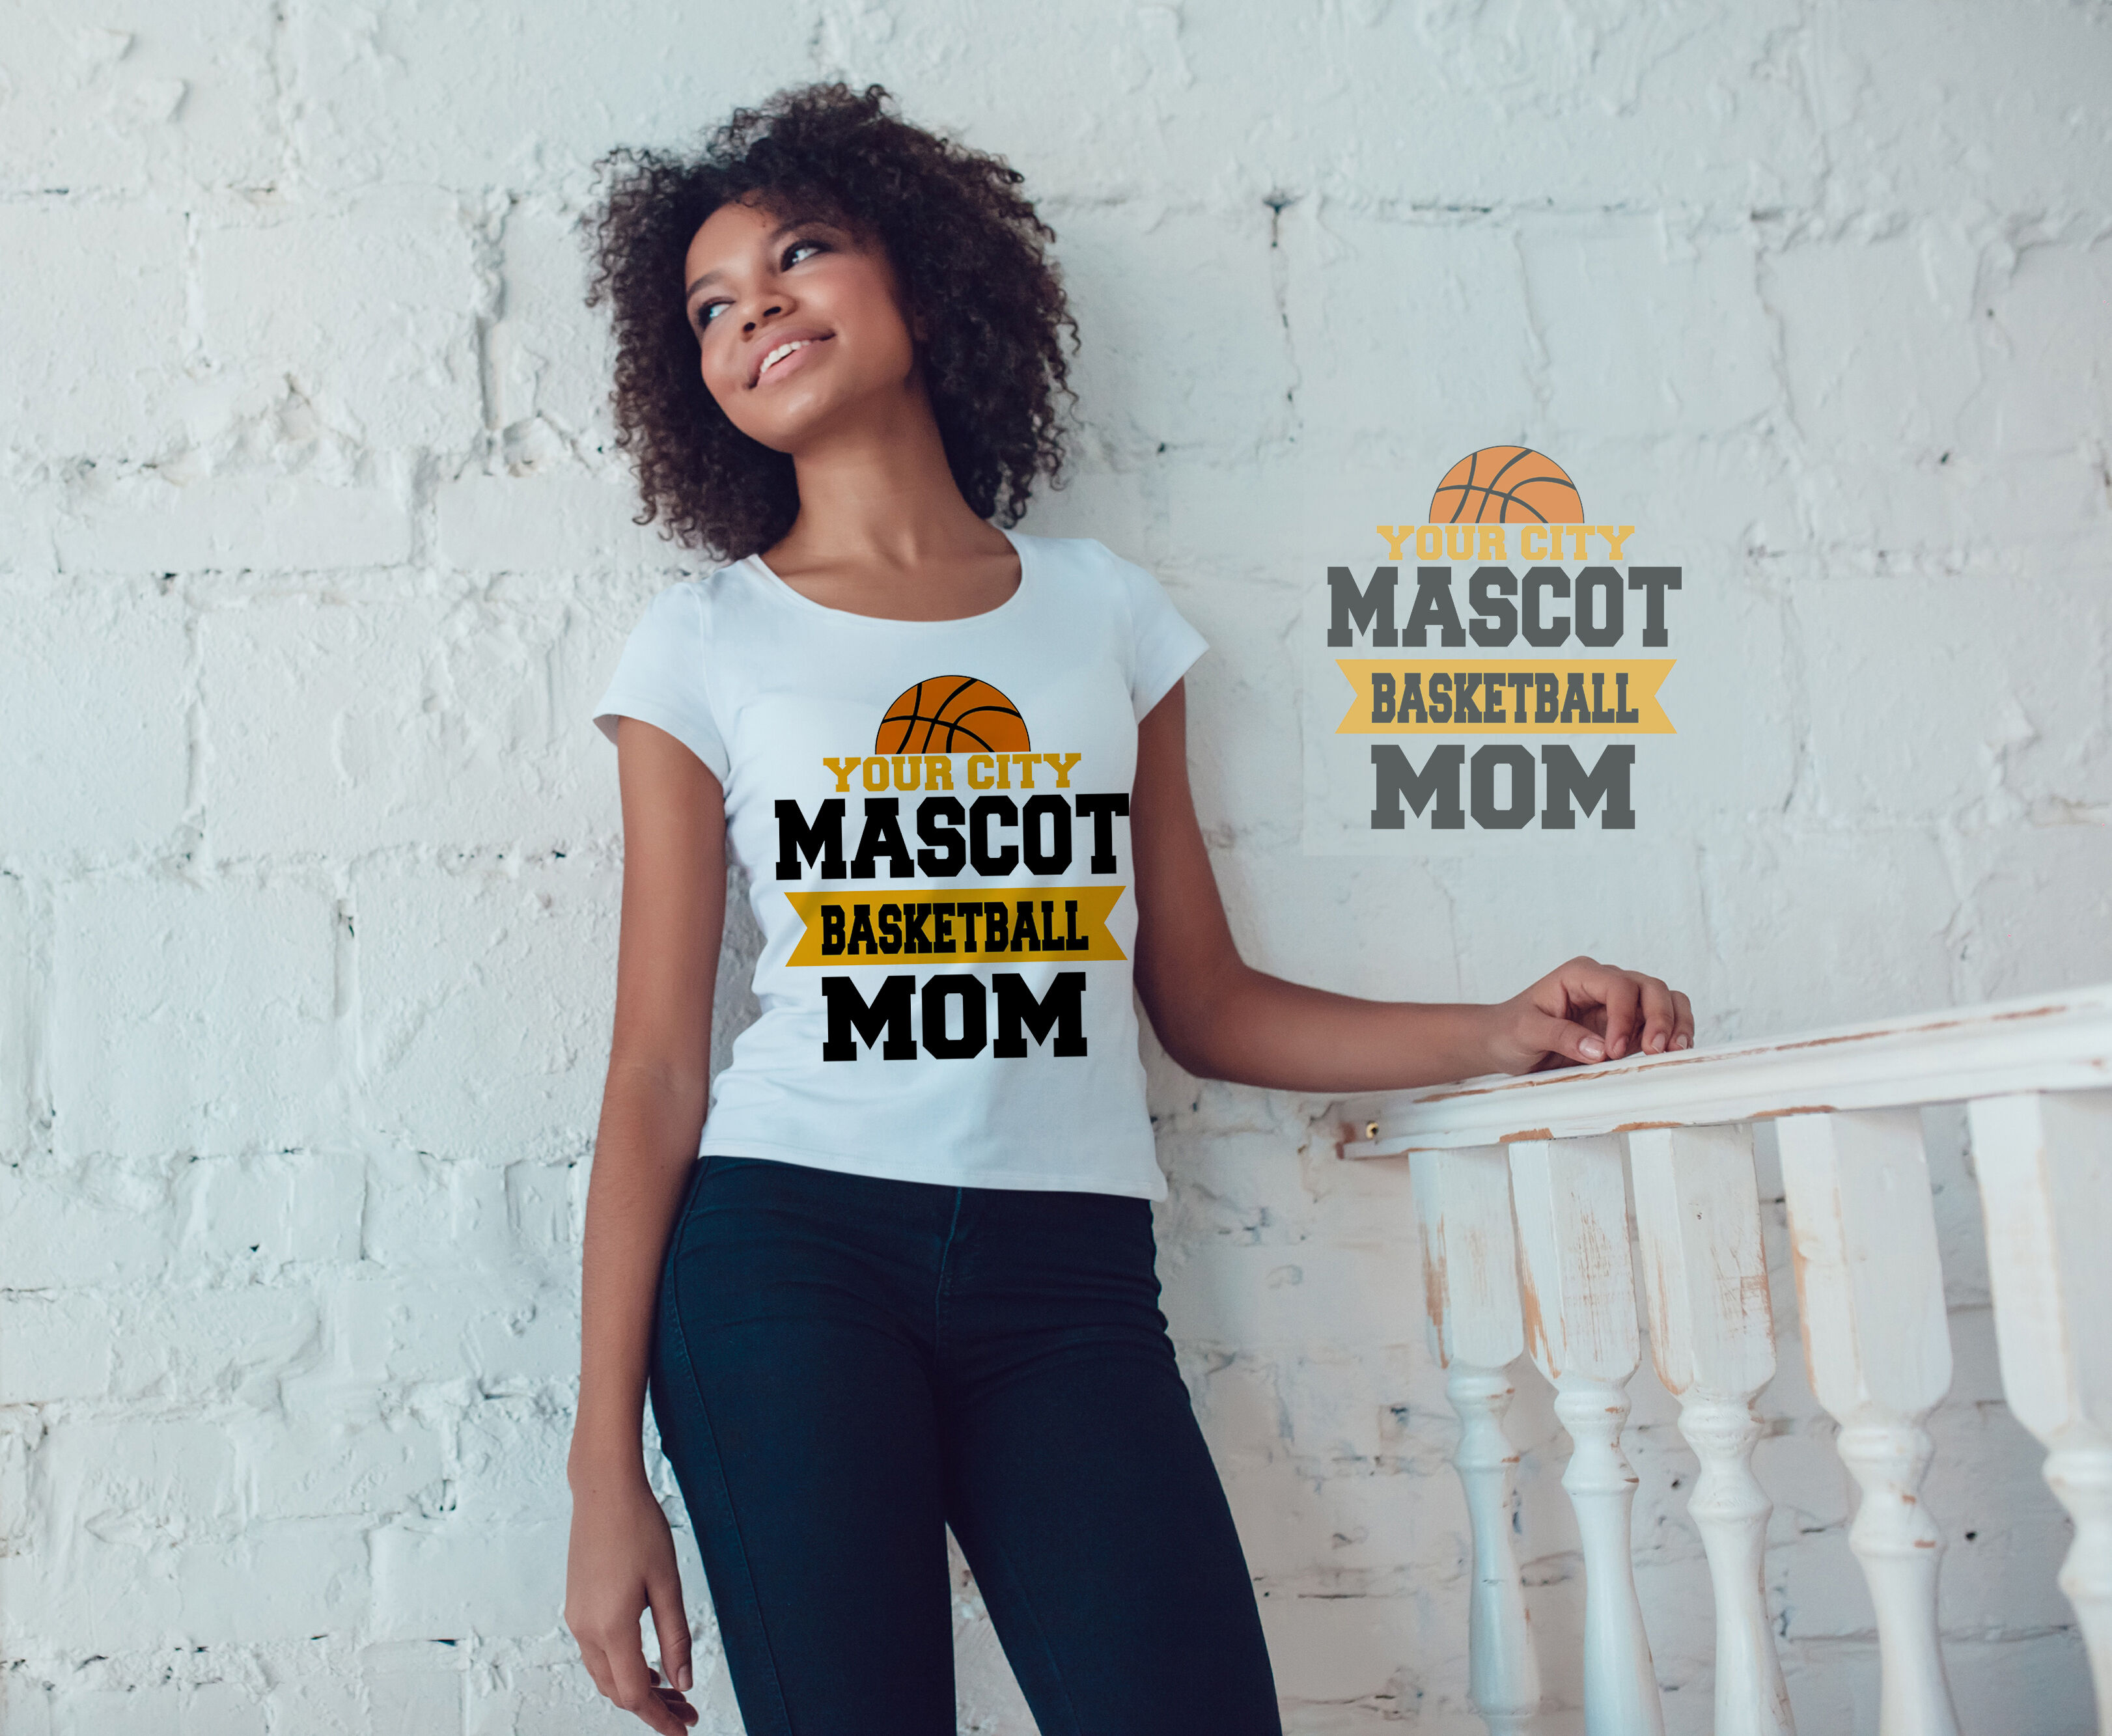 Basketball Mom Mascot Svg Dxf Eps And Jpg Files For Cutting Ma By Digital Files Mania Thehungryjpeg Com